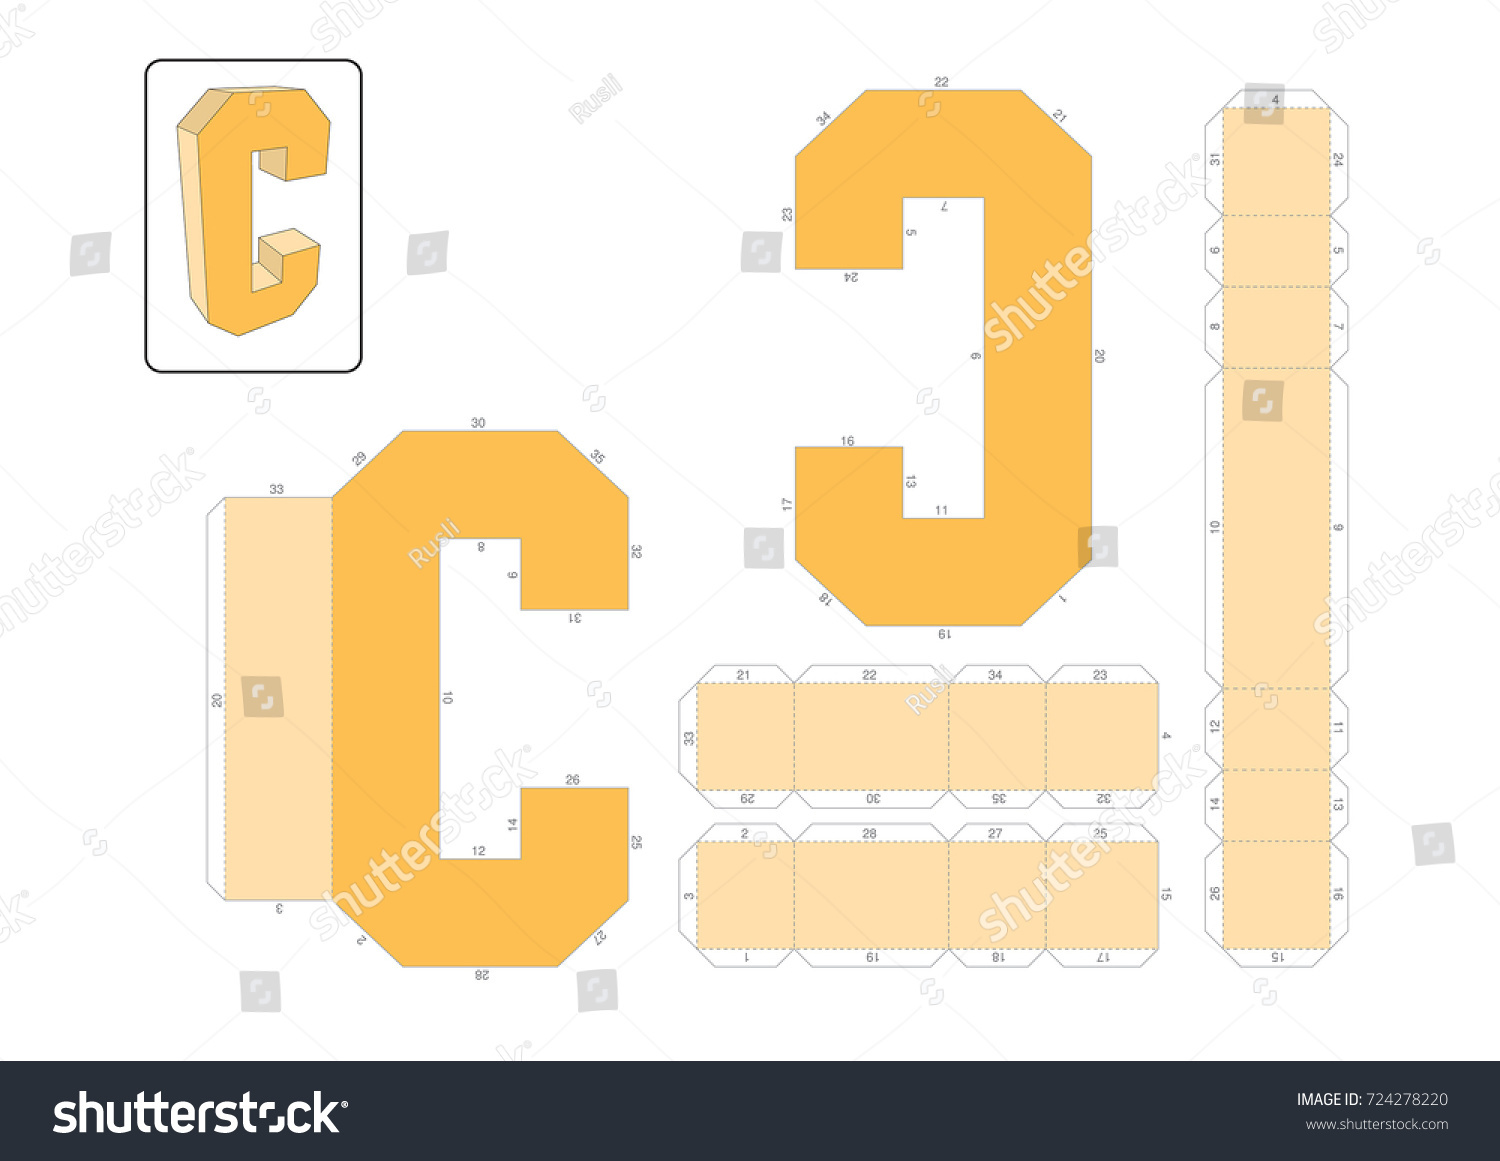 C Alphabet Paper Model Template Cut Out And Glue With Numbers Marked Into A 3D